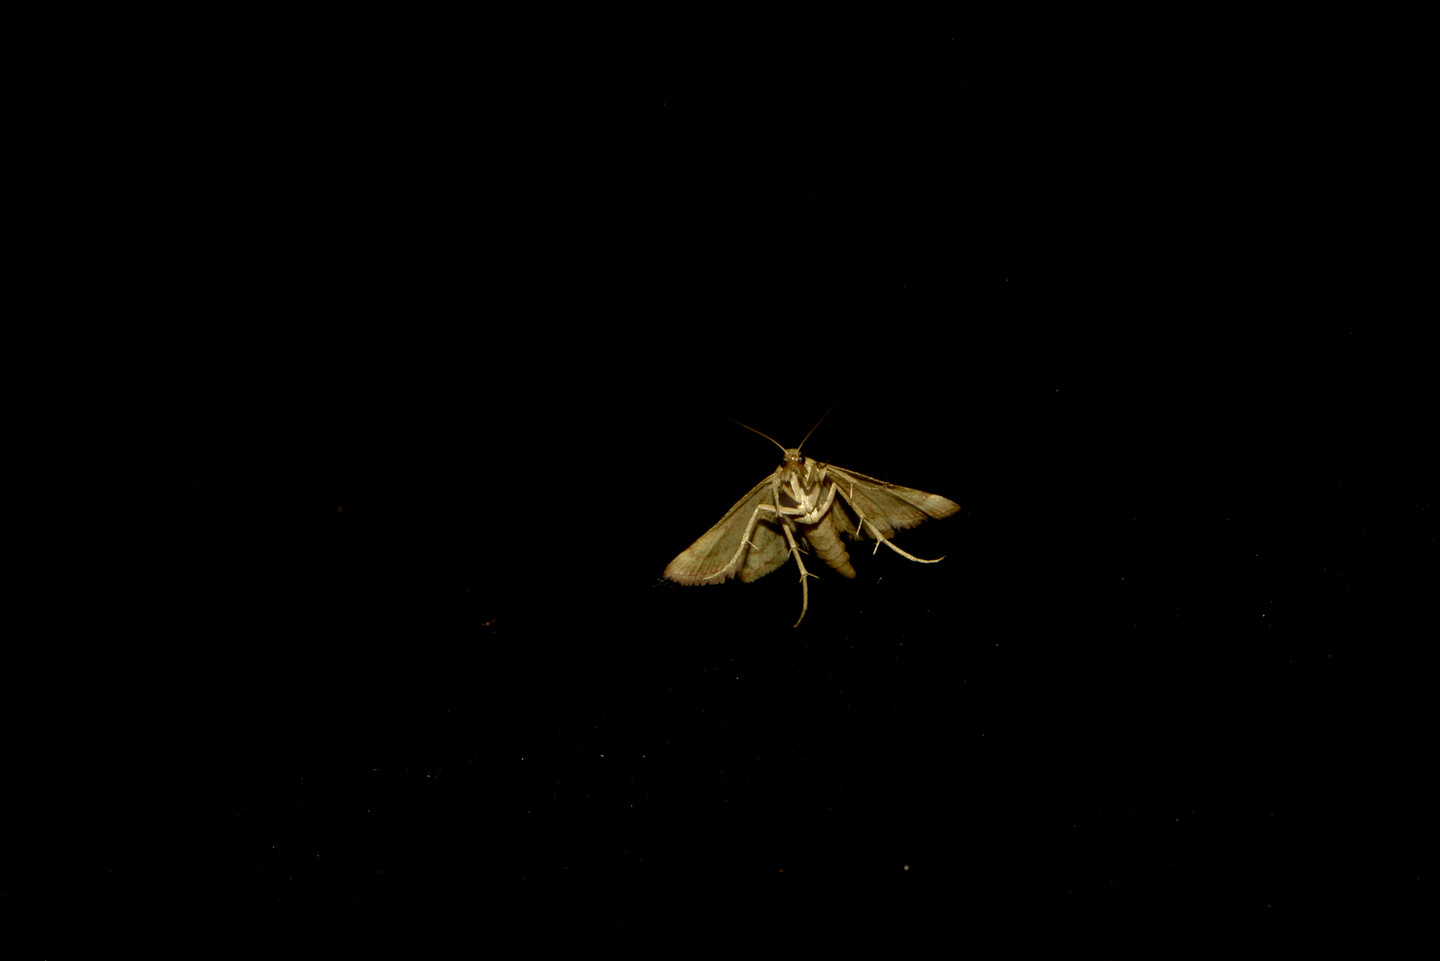 moth papillon nuit insecte photography night darkness entomology art sciart